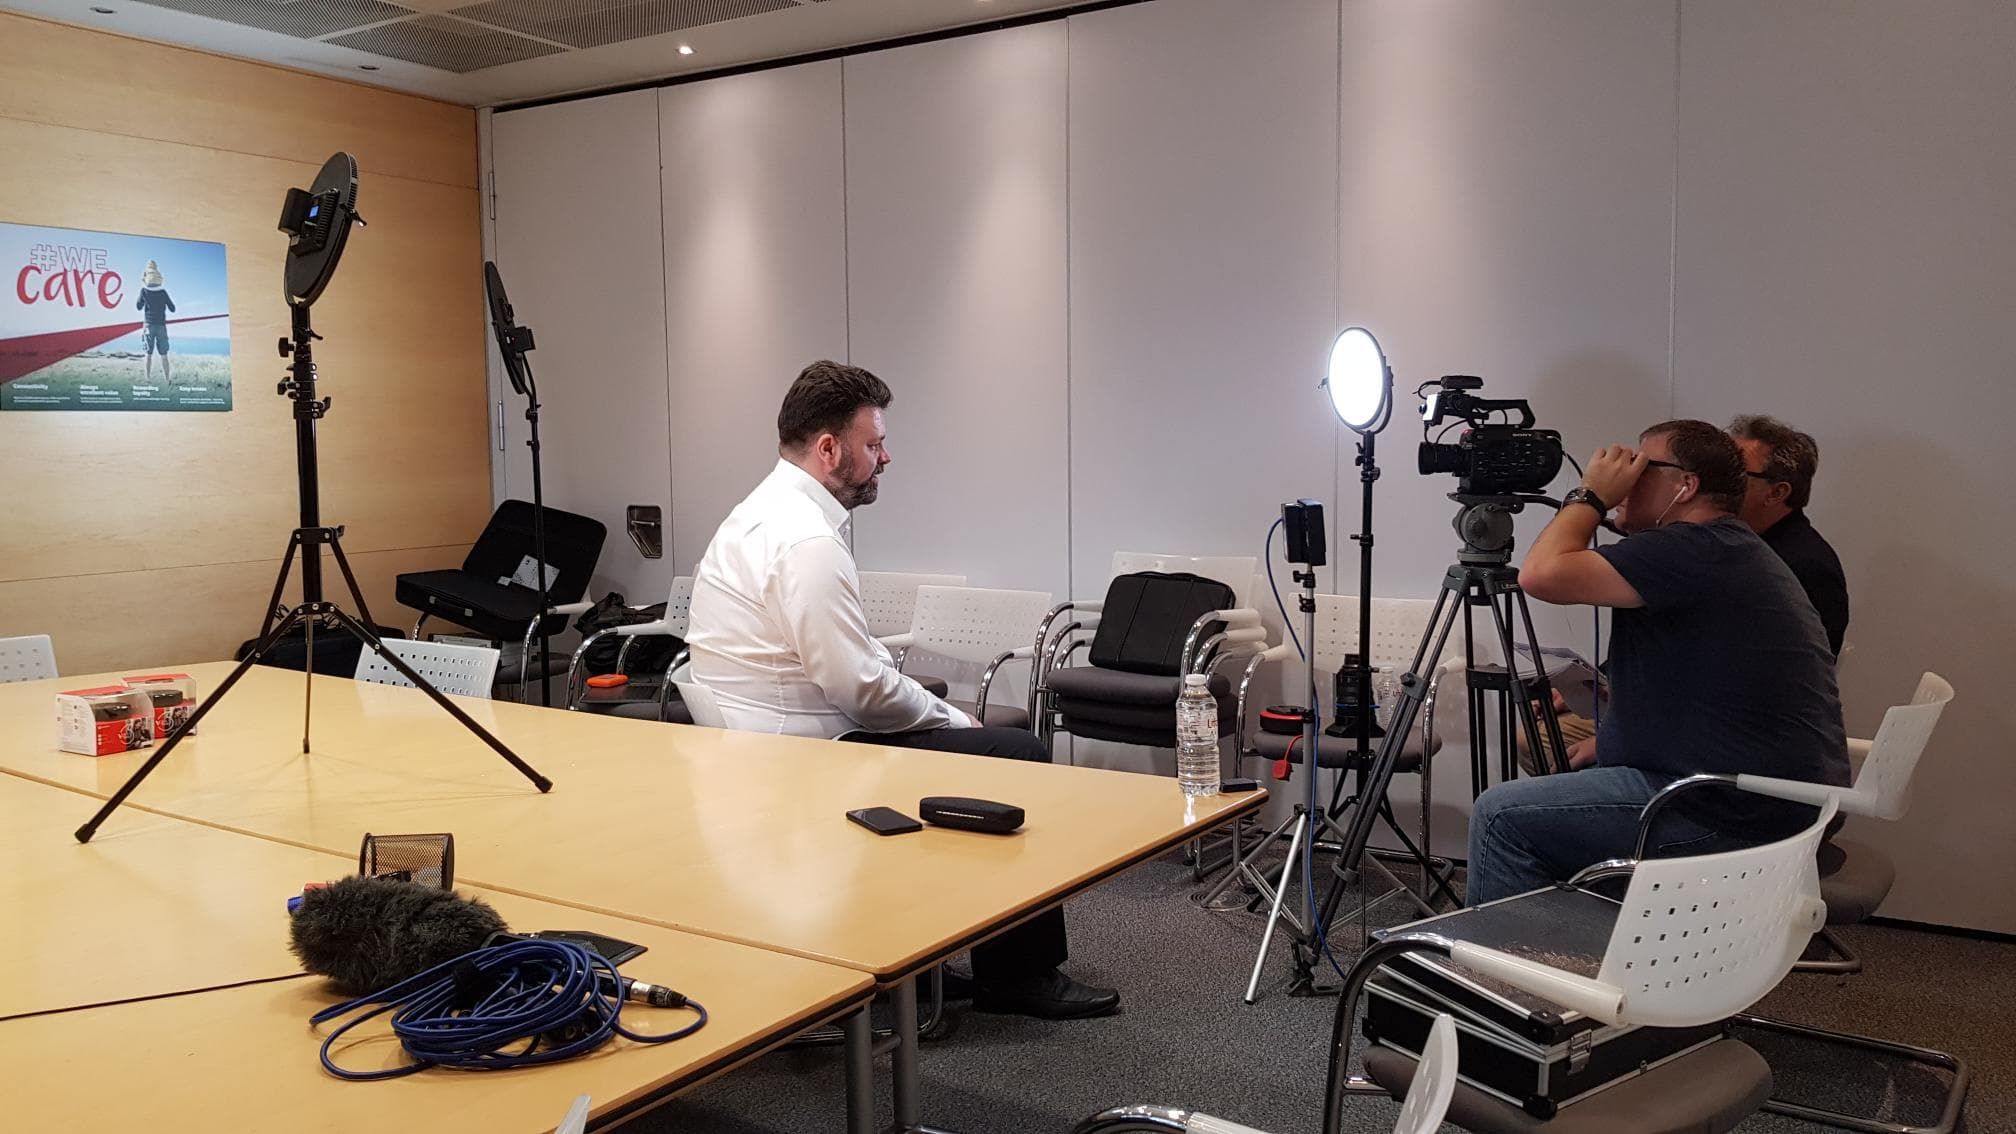 Filming at Vodafone HQ